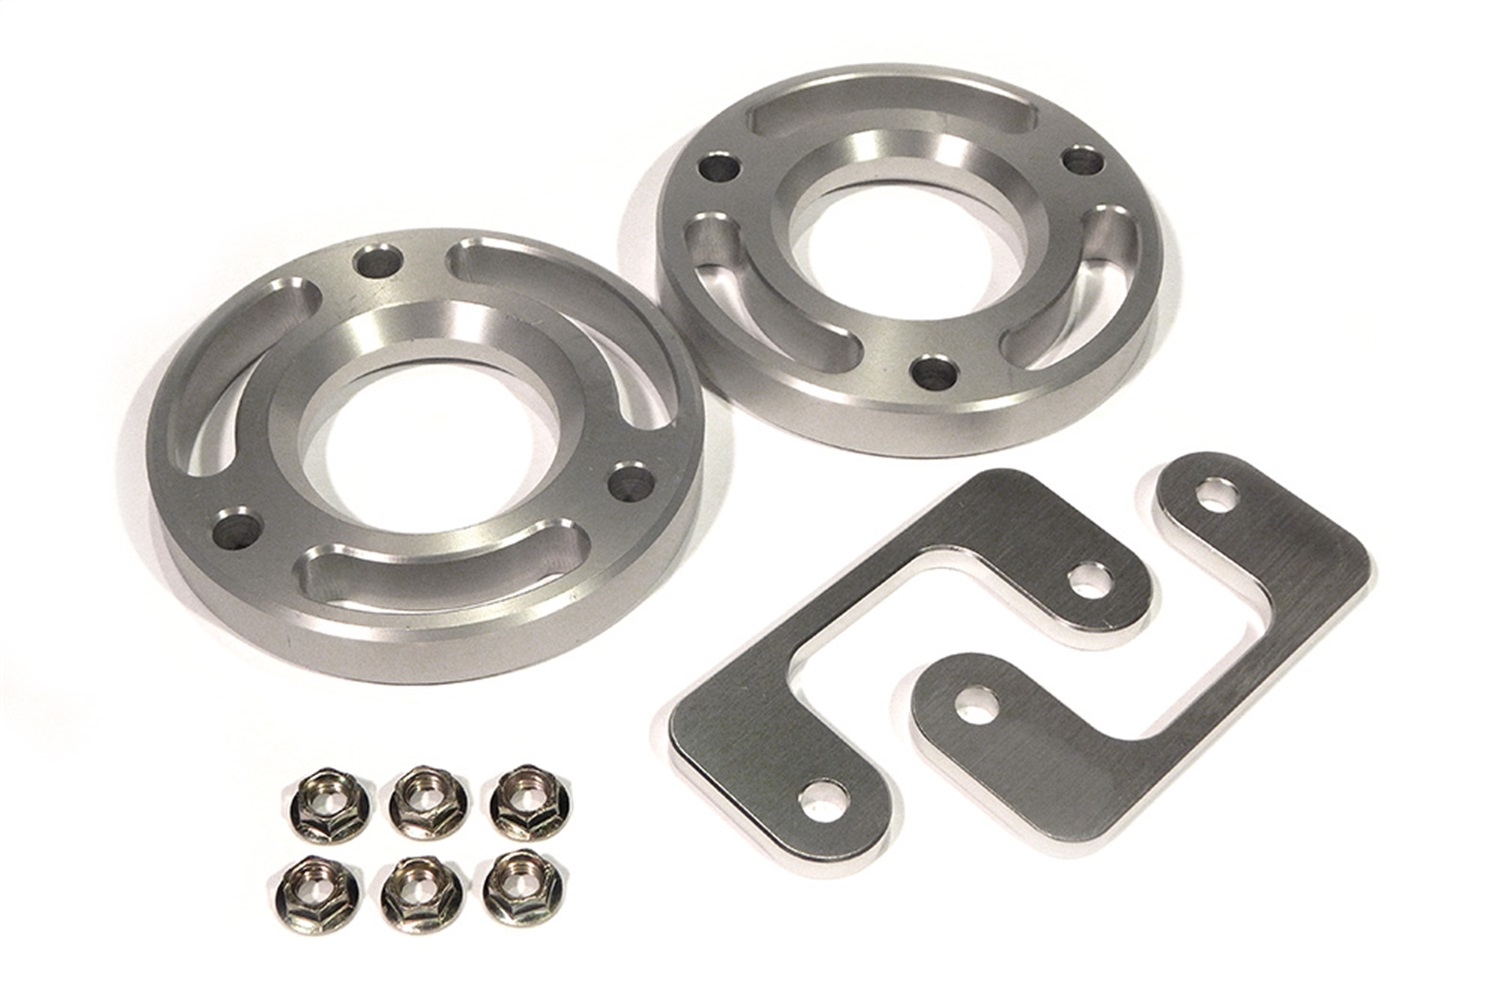 Iconic Accessories 611-1804 2.25 in. Leveling Kit